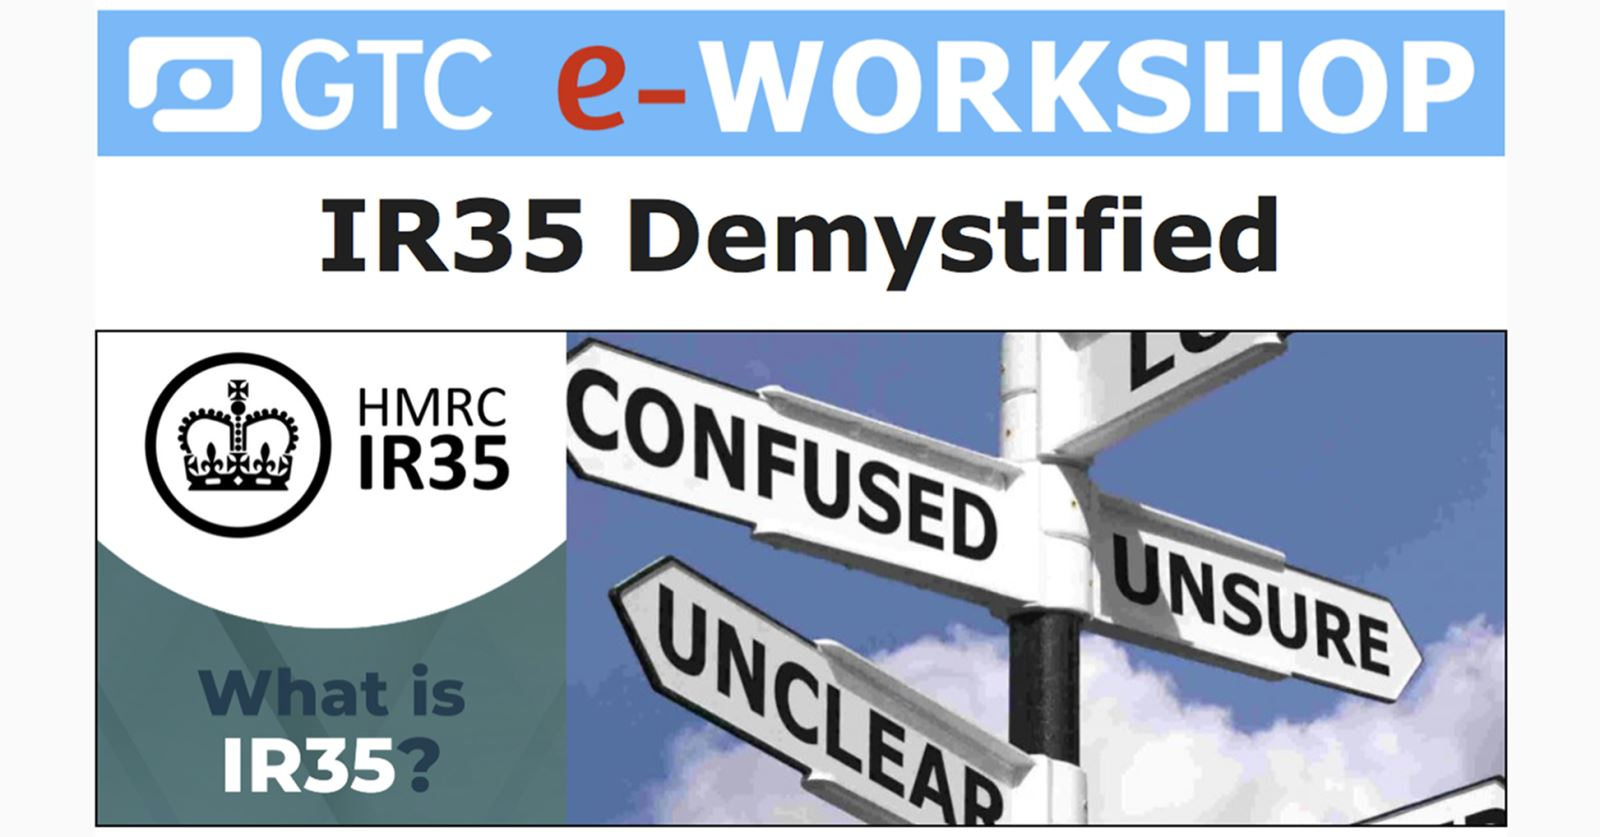 GTC eWorkshop – IR35 Demystified: see the recording now